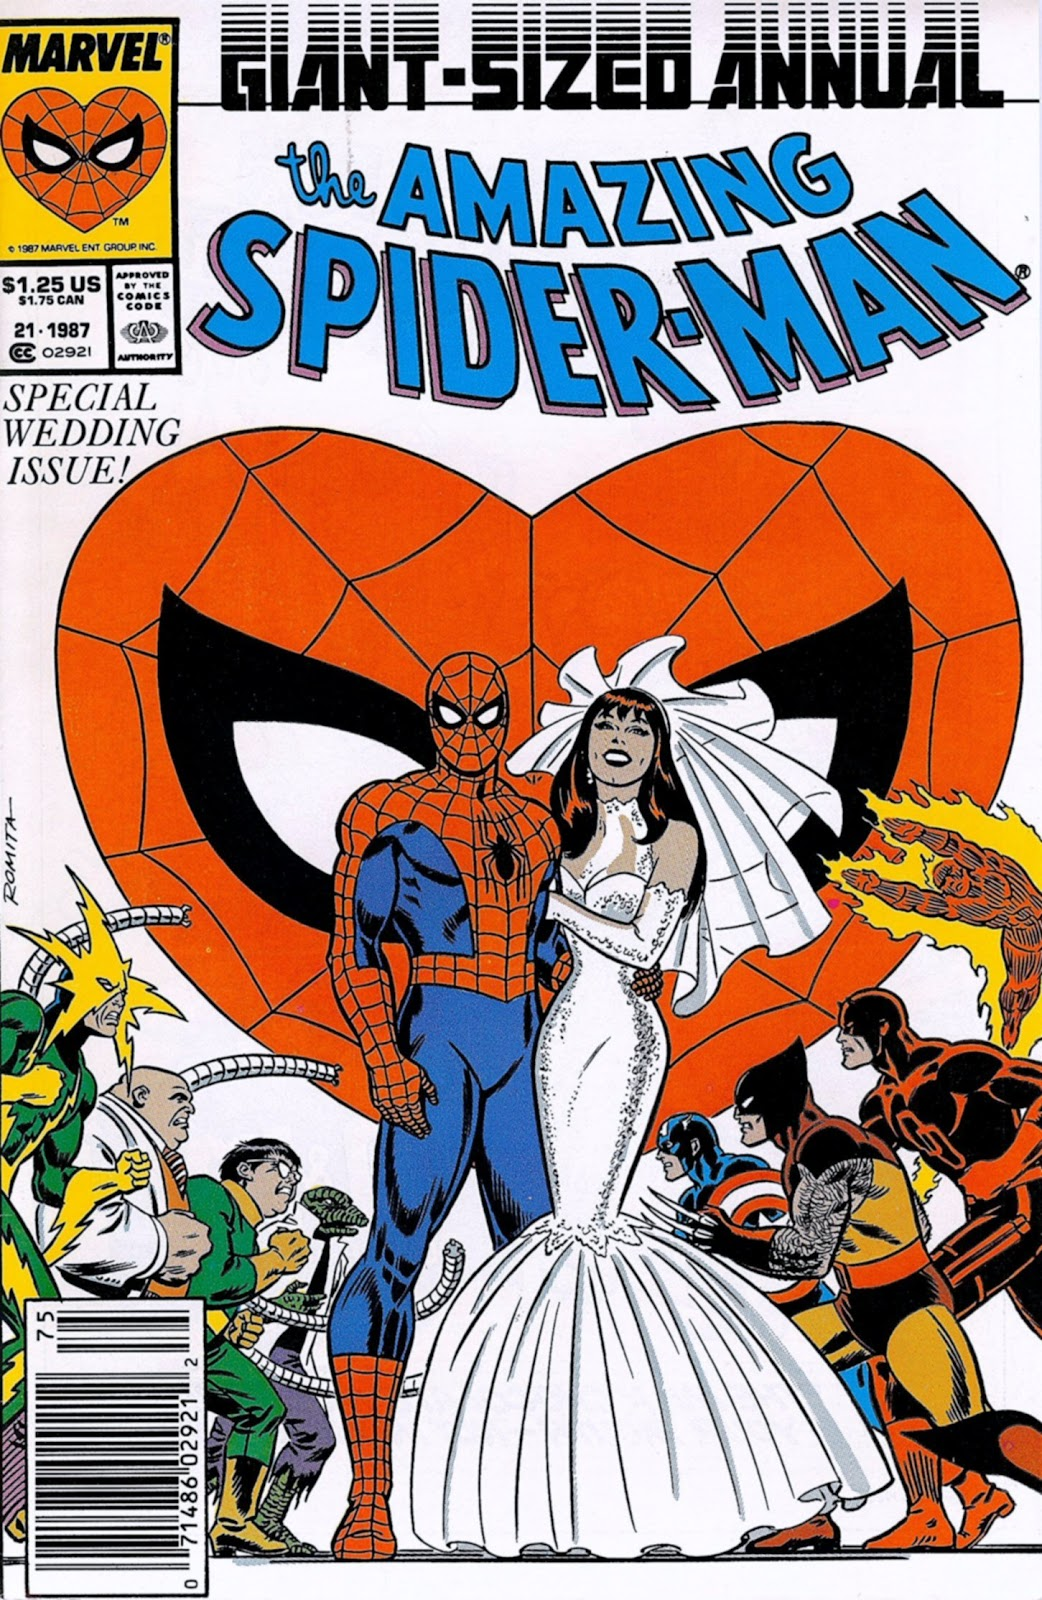 amazing-spider-man-21-giant-size-annual-wedding-issue-costume-and-villains-variant_22275201.jpeg